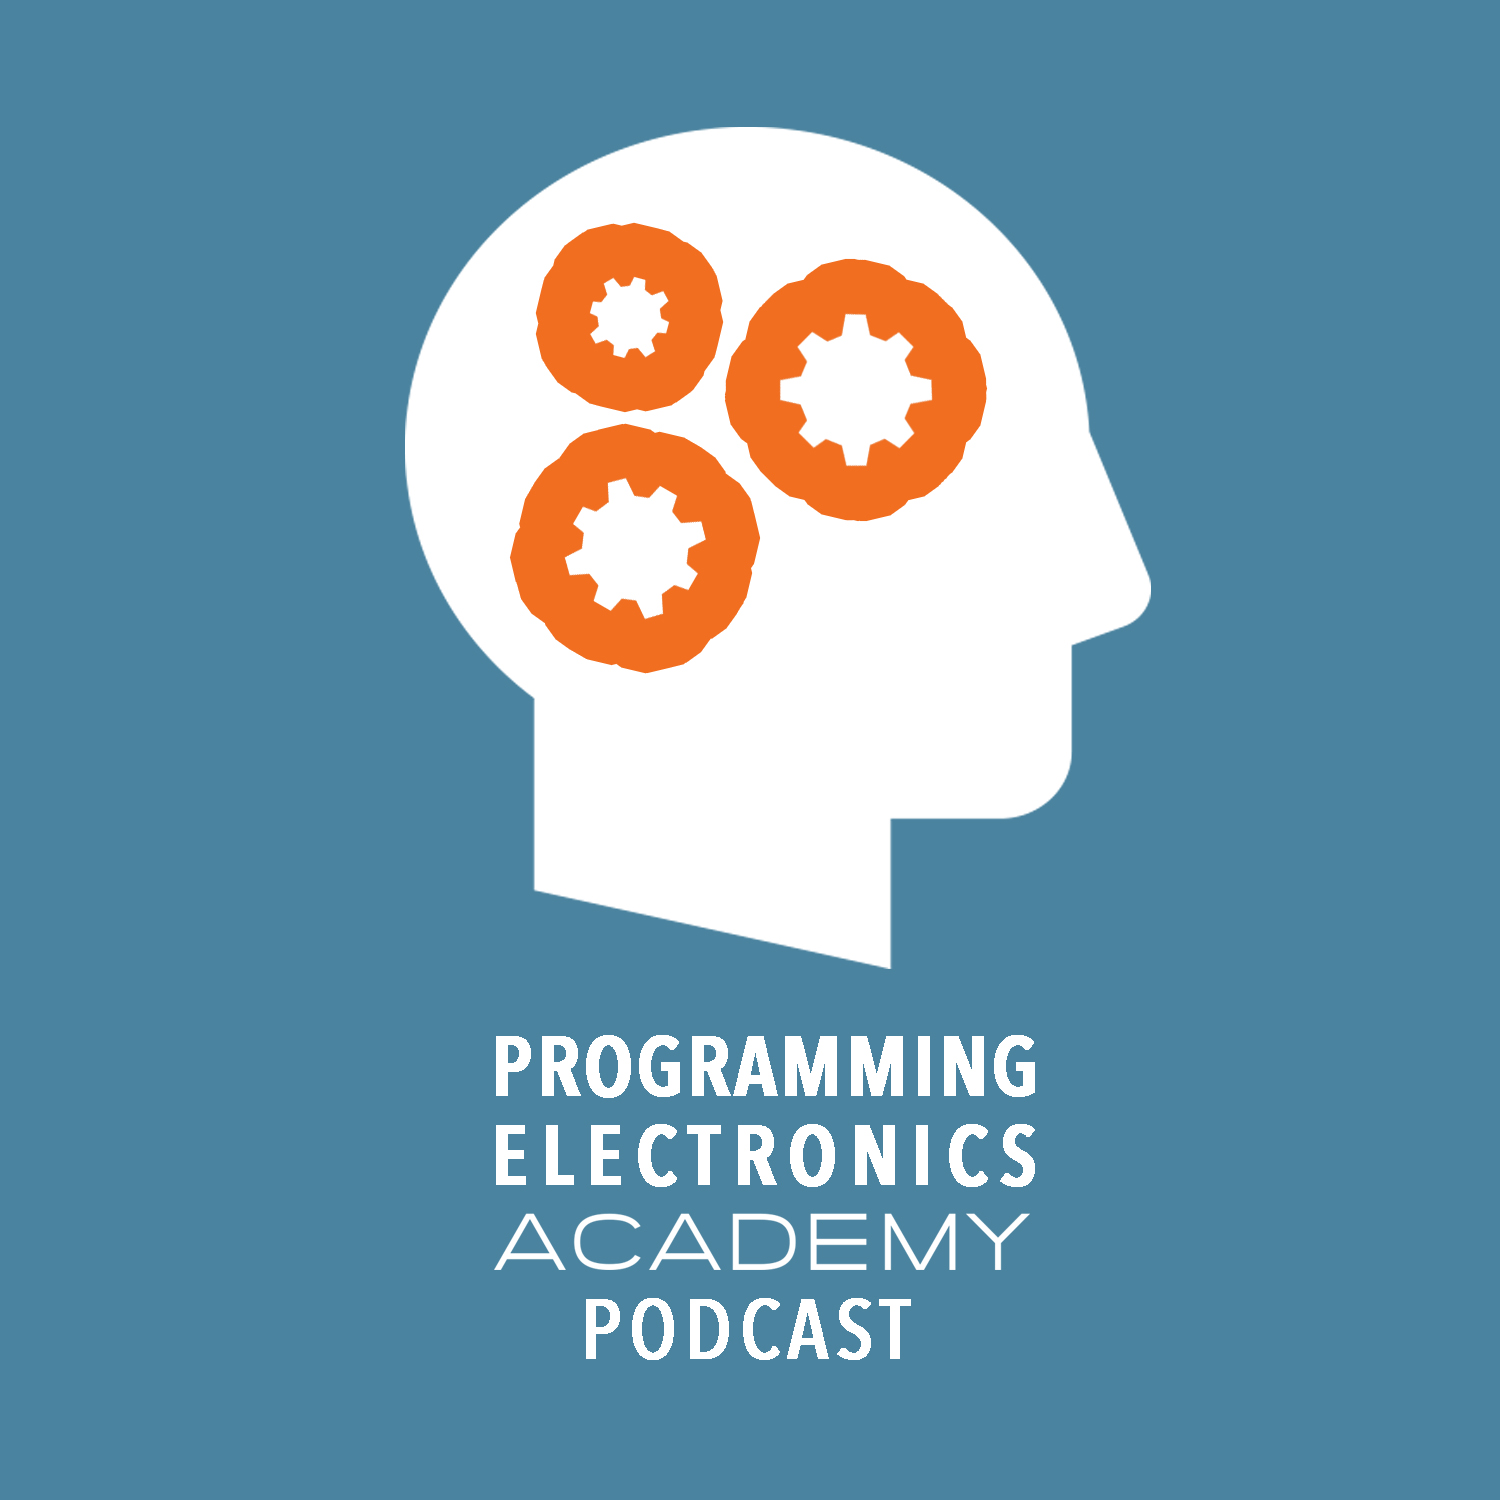 Programming Electronics Academy Podcast show art